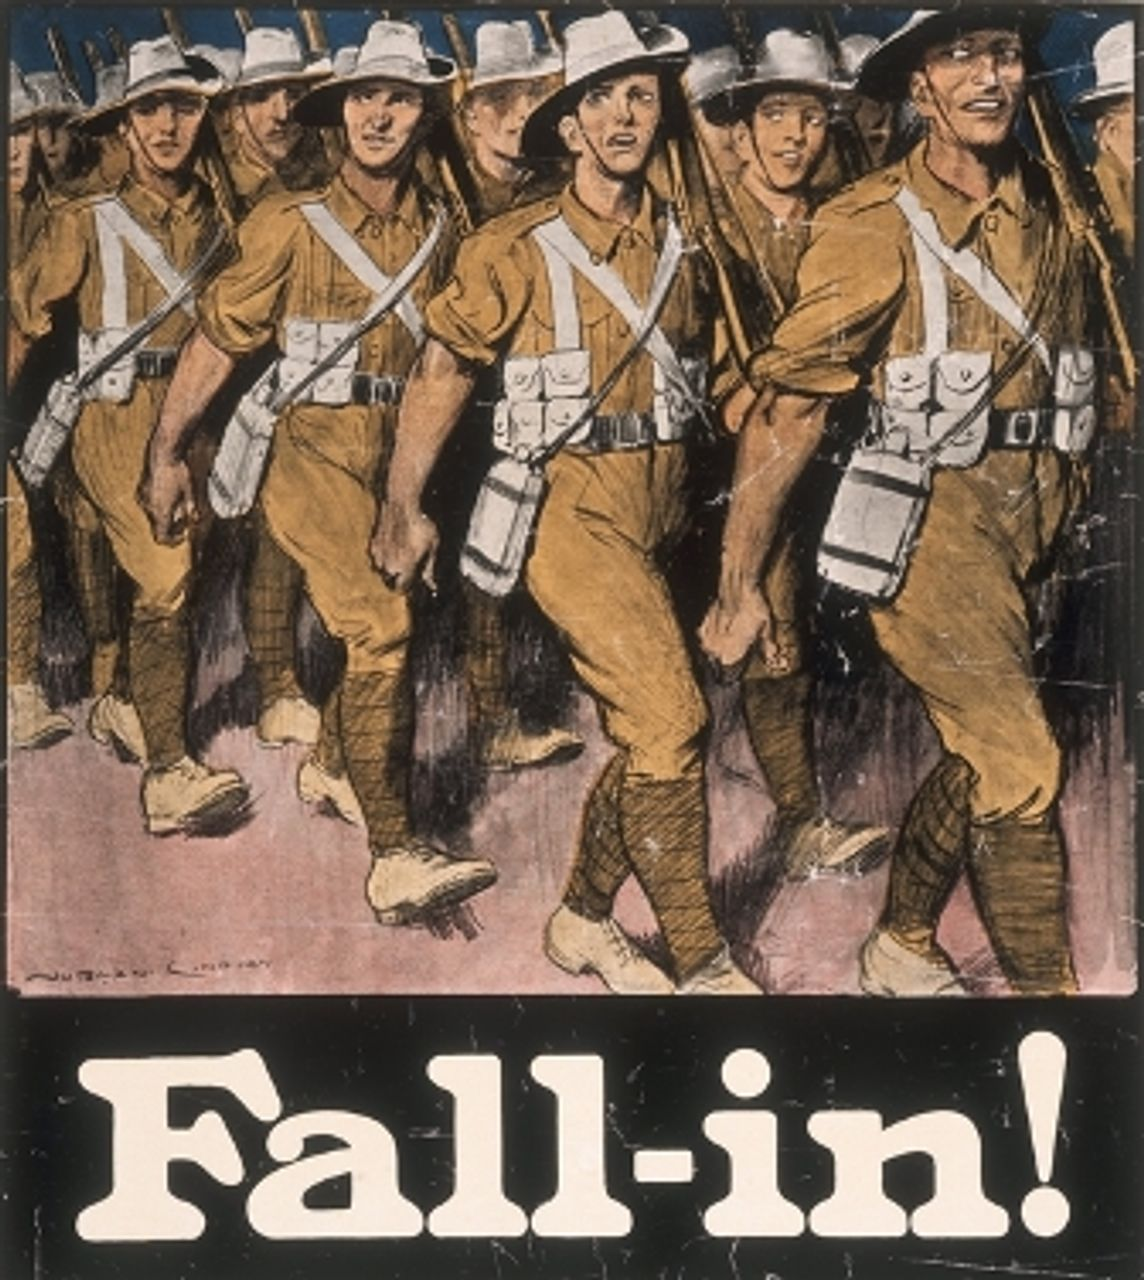 Fall in! Recruitment poster (ARTV00027 image courtesy Australian War Memorial)